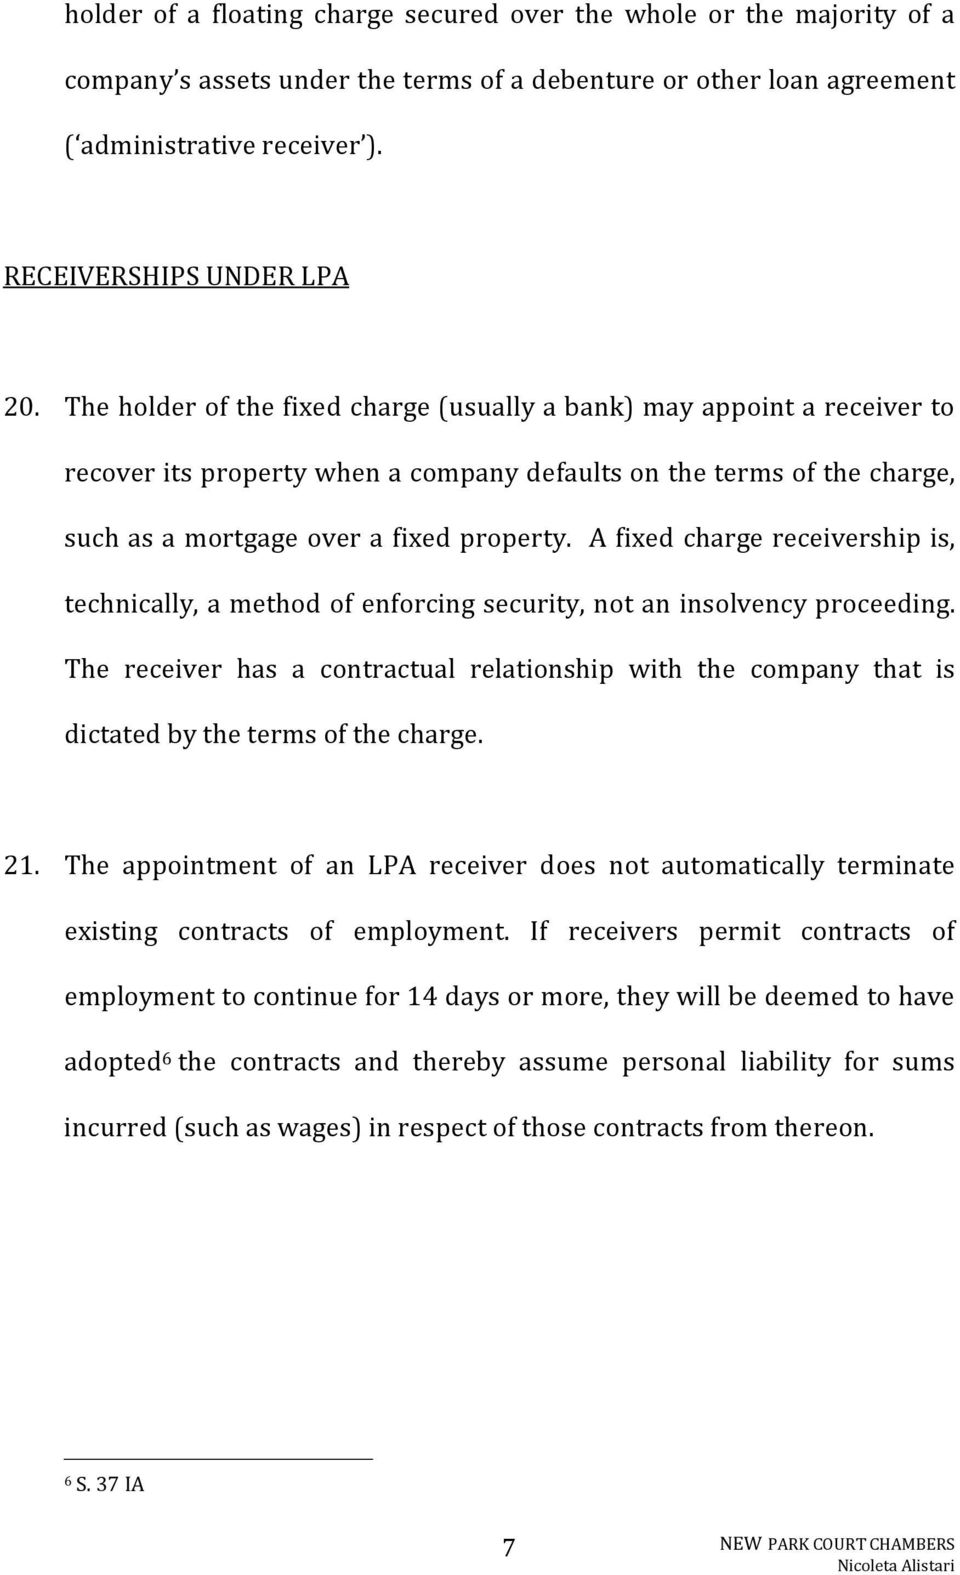 A fixed charge receivership is, technically, a method of enforcing security, not an insolvency proceeding.